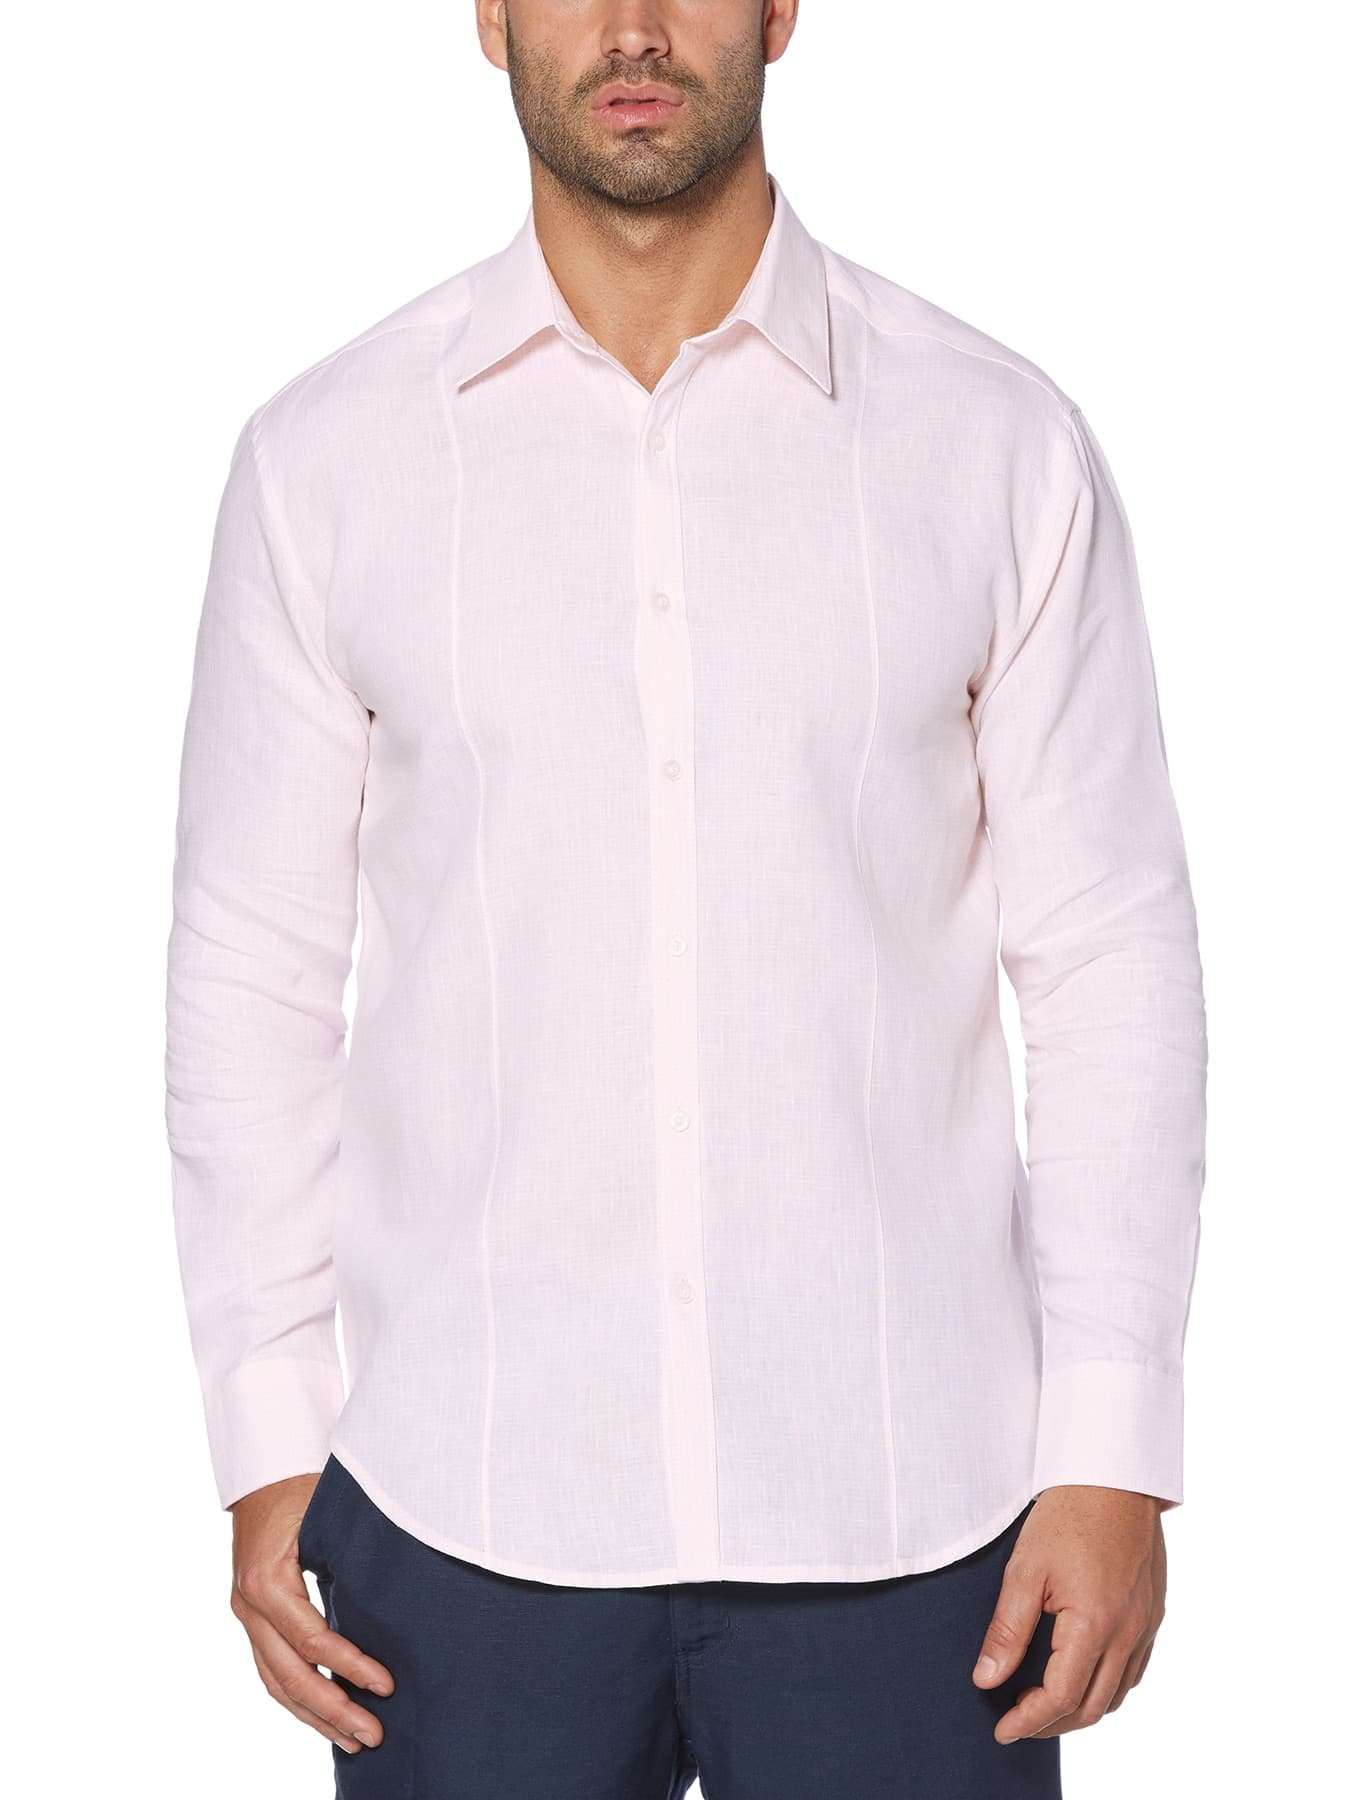 Cubavera up to 78% off your Order: Casual Shirts from $11, Pants from $20 and more + Free S/H w/ Good Life Rewards